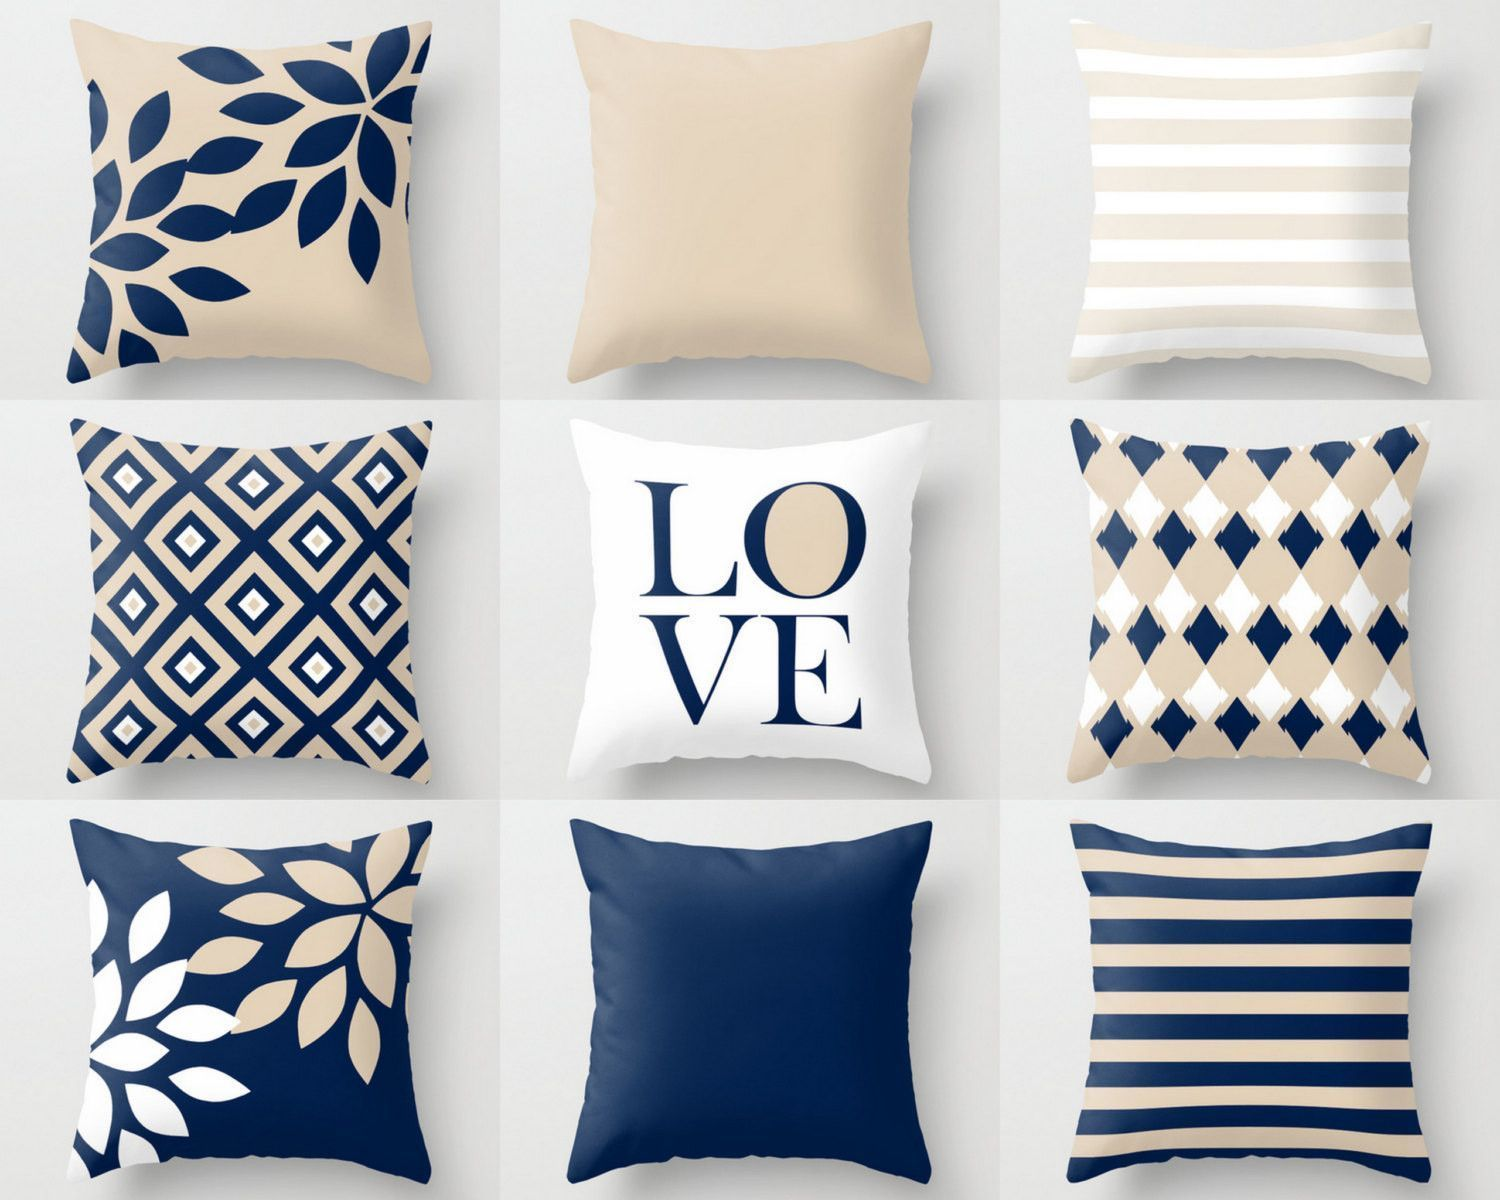 7 Simple And Stylish Tips Can Change Your Life Decorative Pillows On Bed Sheet Sets Decorati Navy Throw Pillows Red Decorative Pillows Throw Pillow Cover Navy